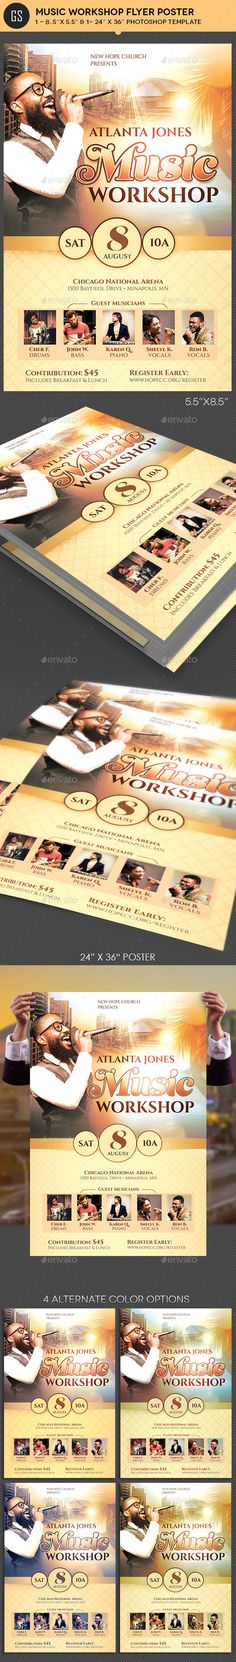 Biz Leader Workshop Flyer | Flyer template, Leaflet template and ...